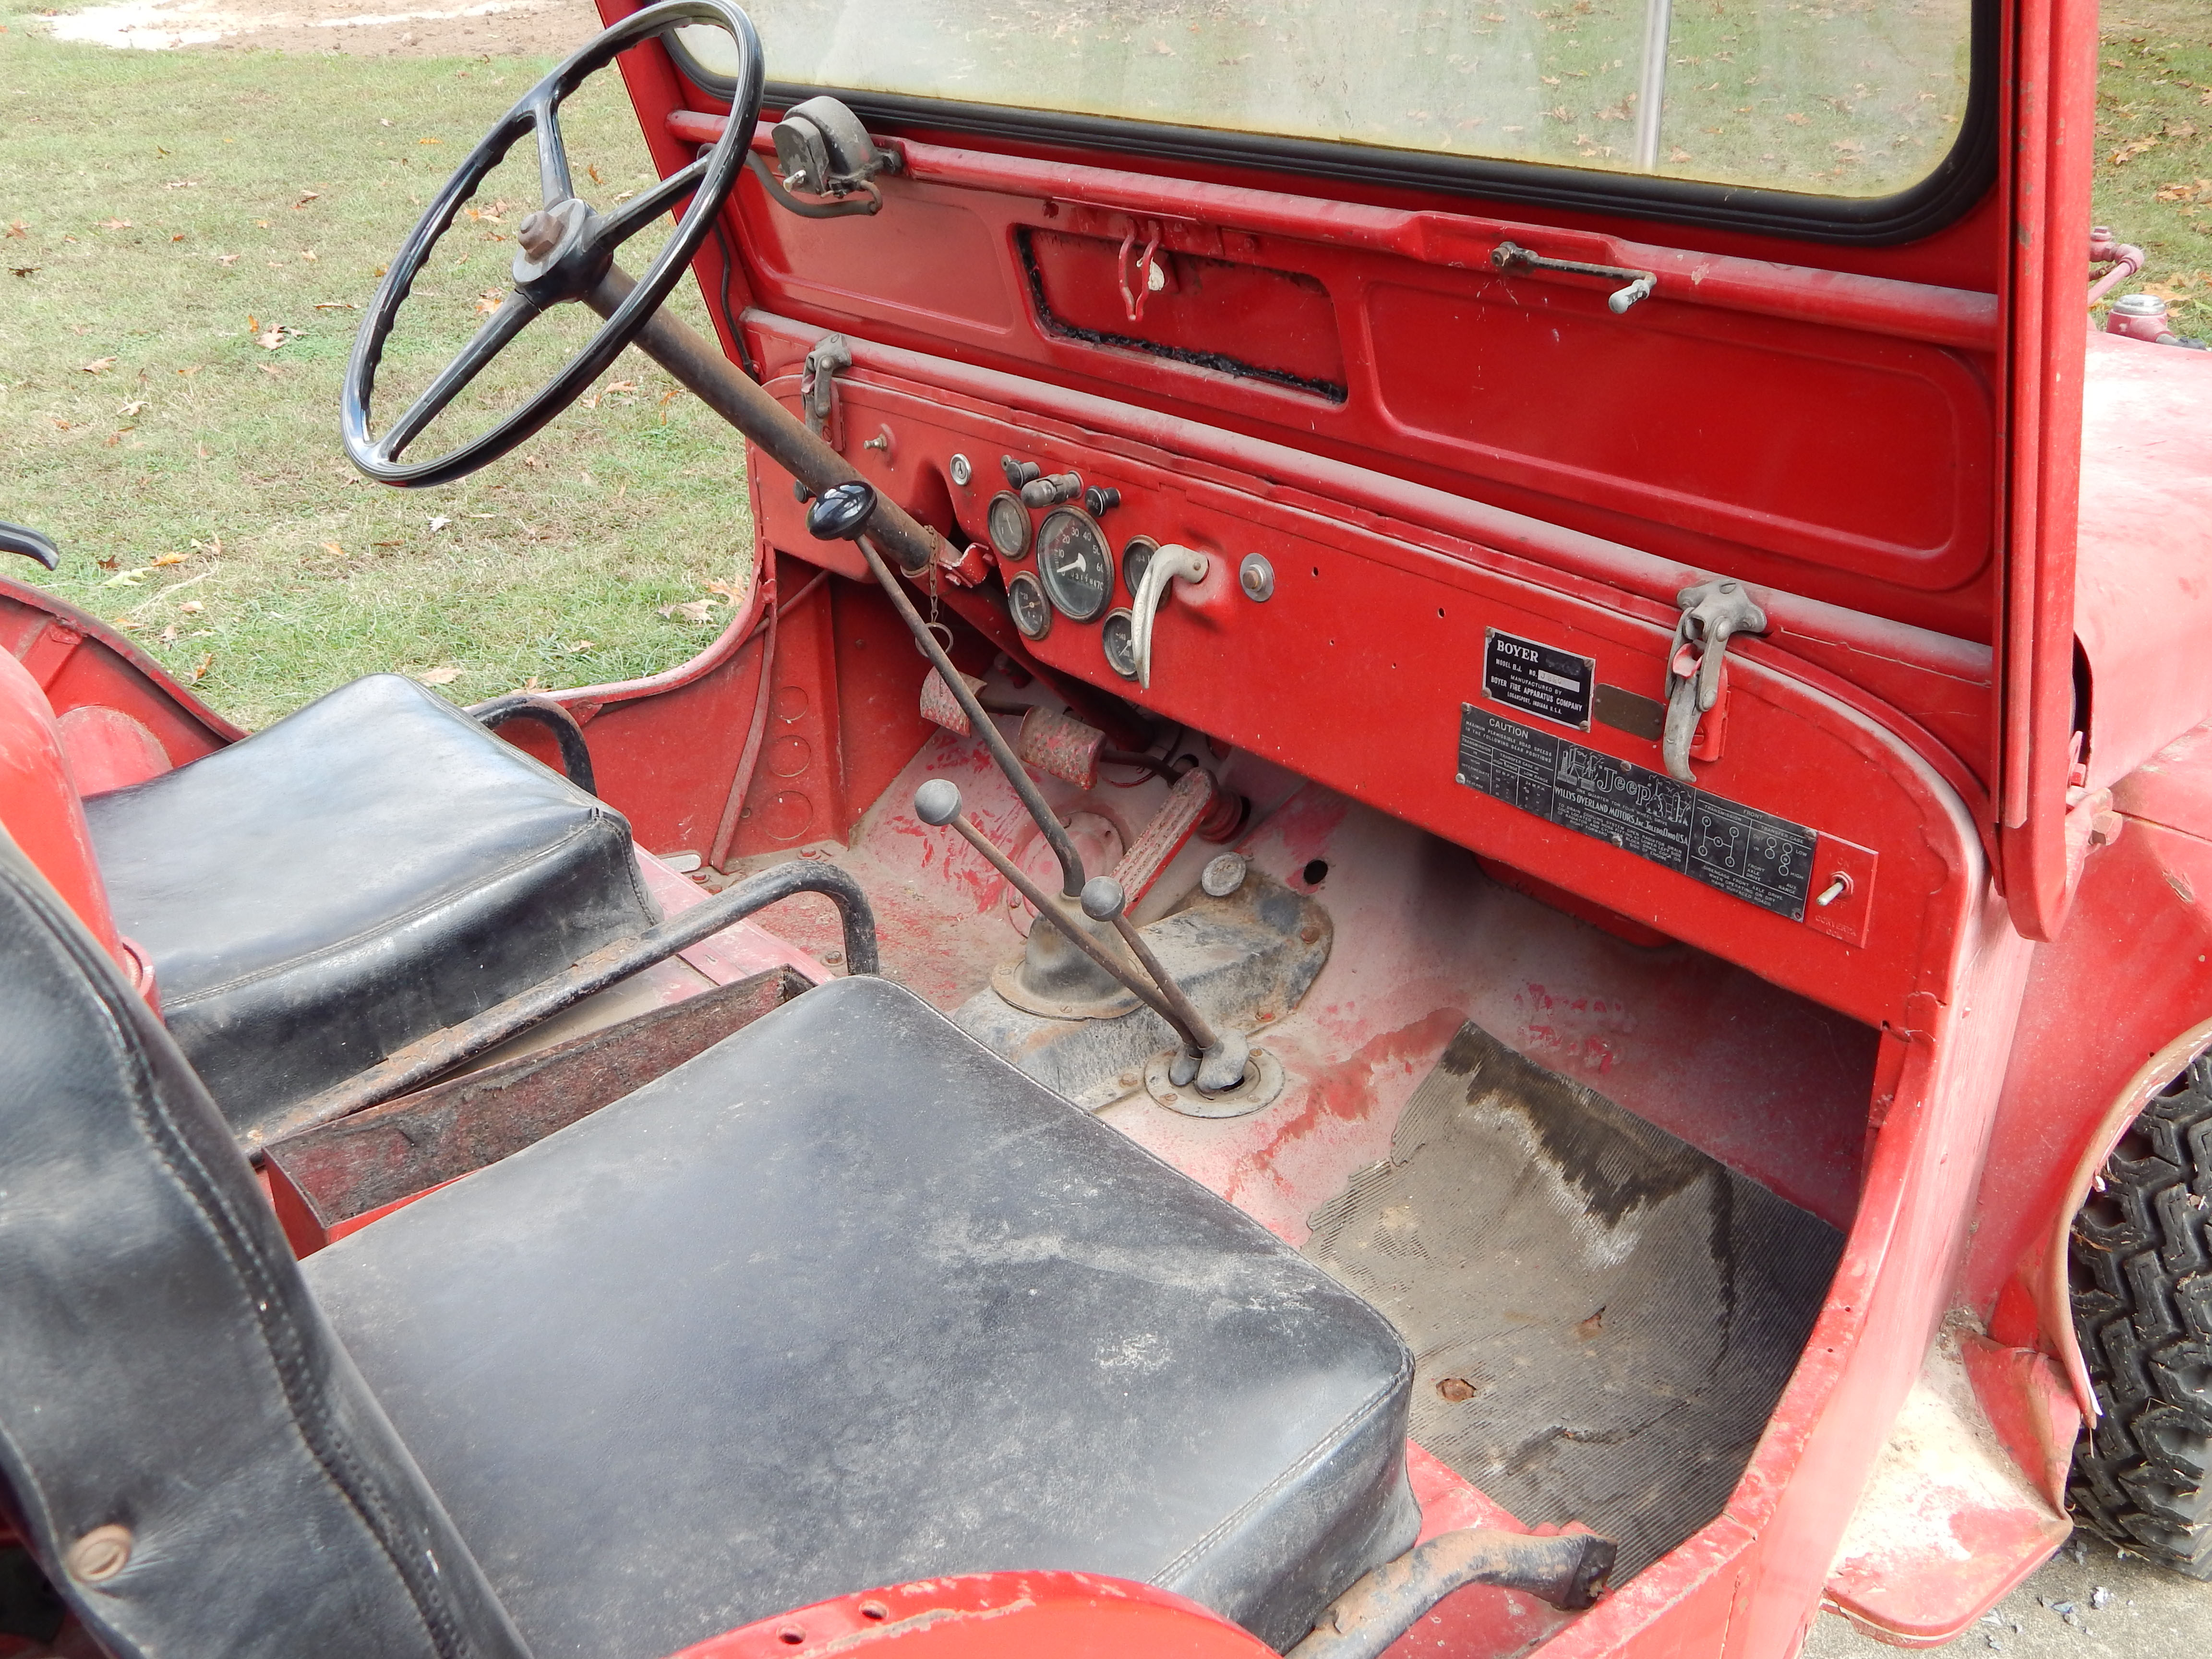 1949 Willys Cj3a Fire Engine Jeep Boyer Conversion Very